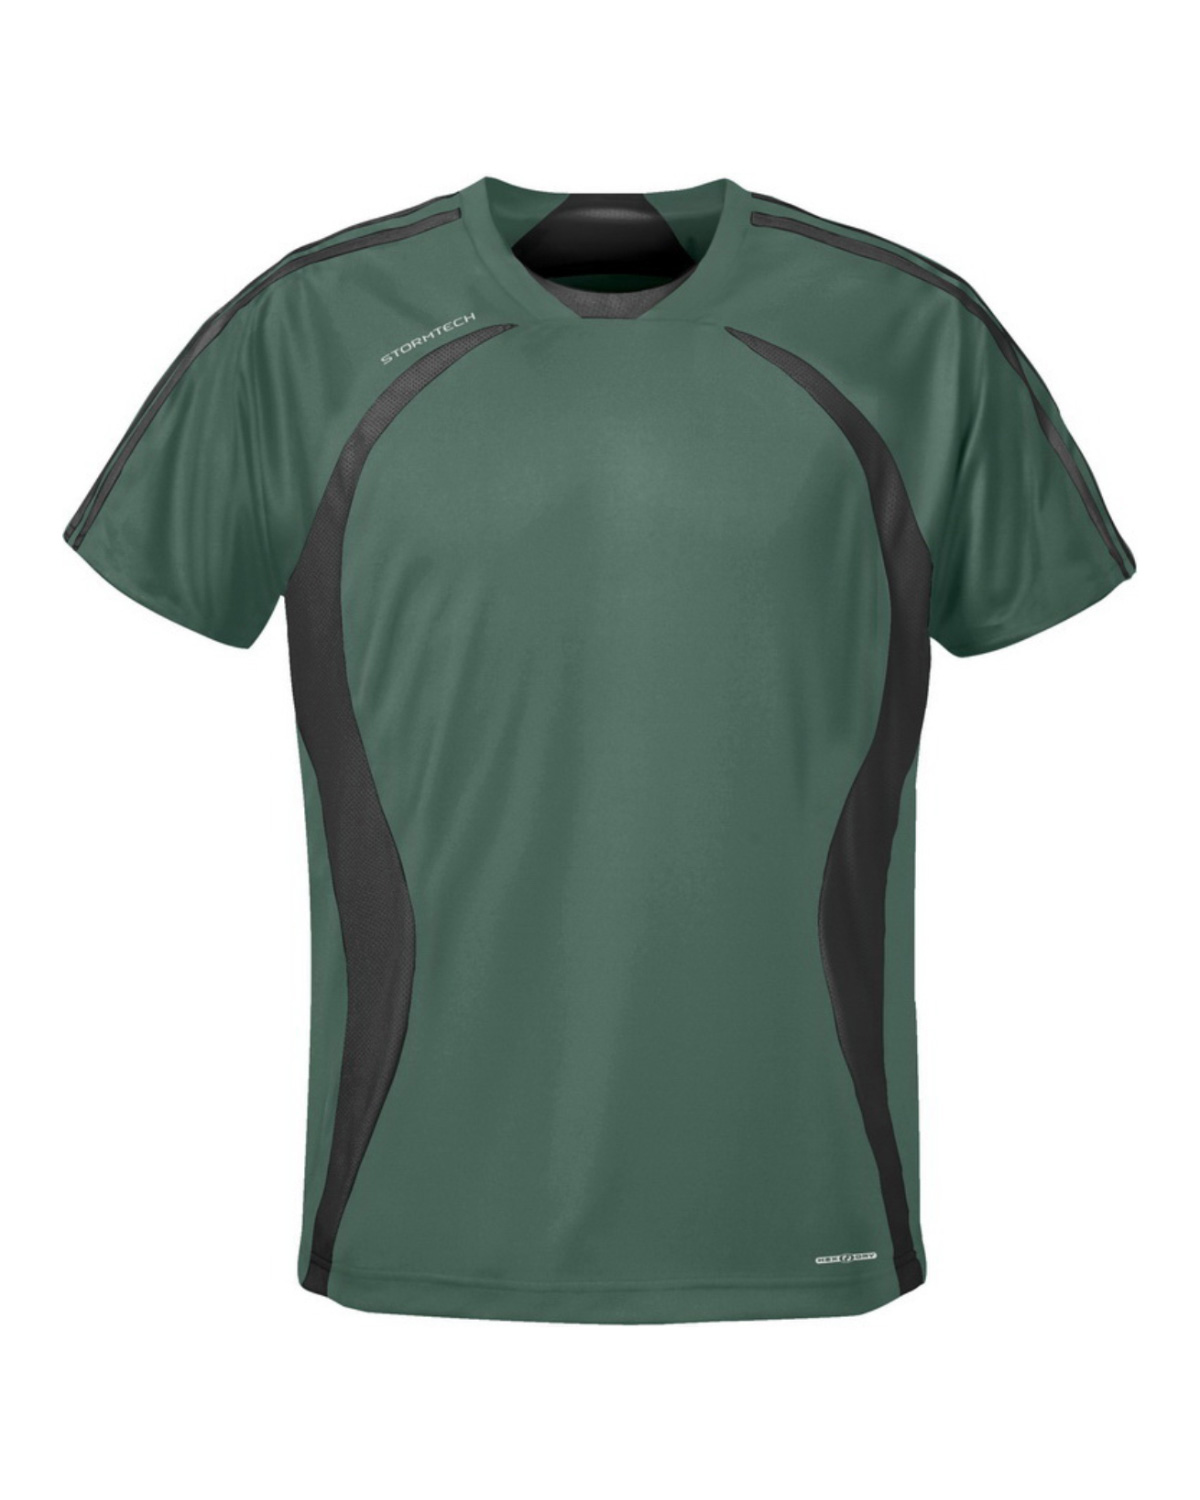 'StormTech SAT120Y Youth's H2X-DRY Select Jersey'